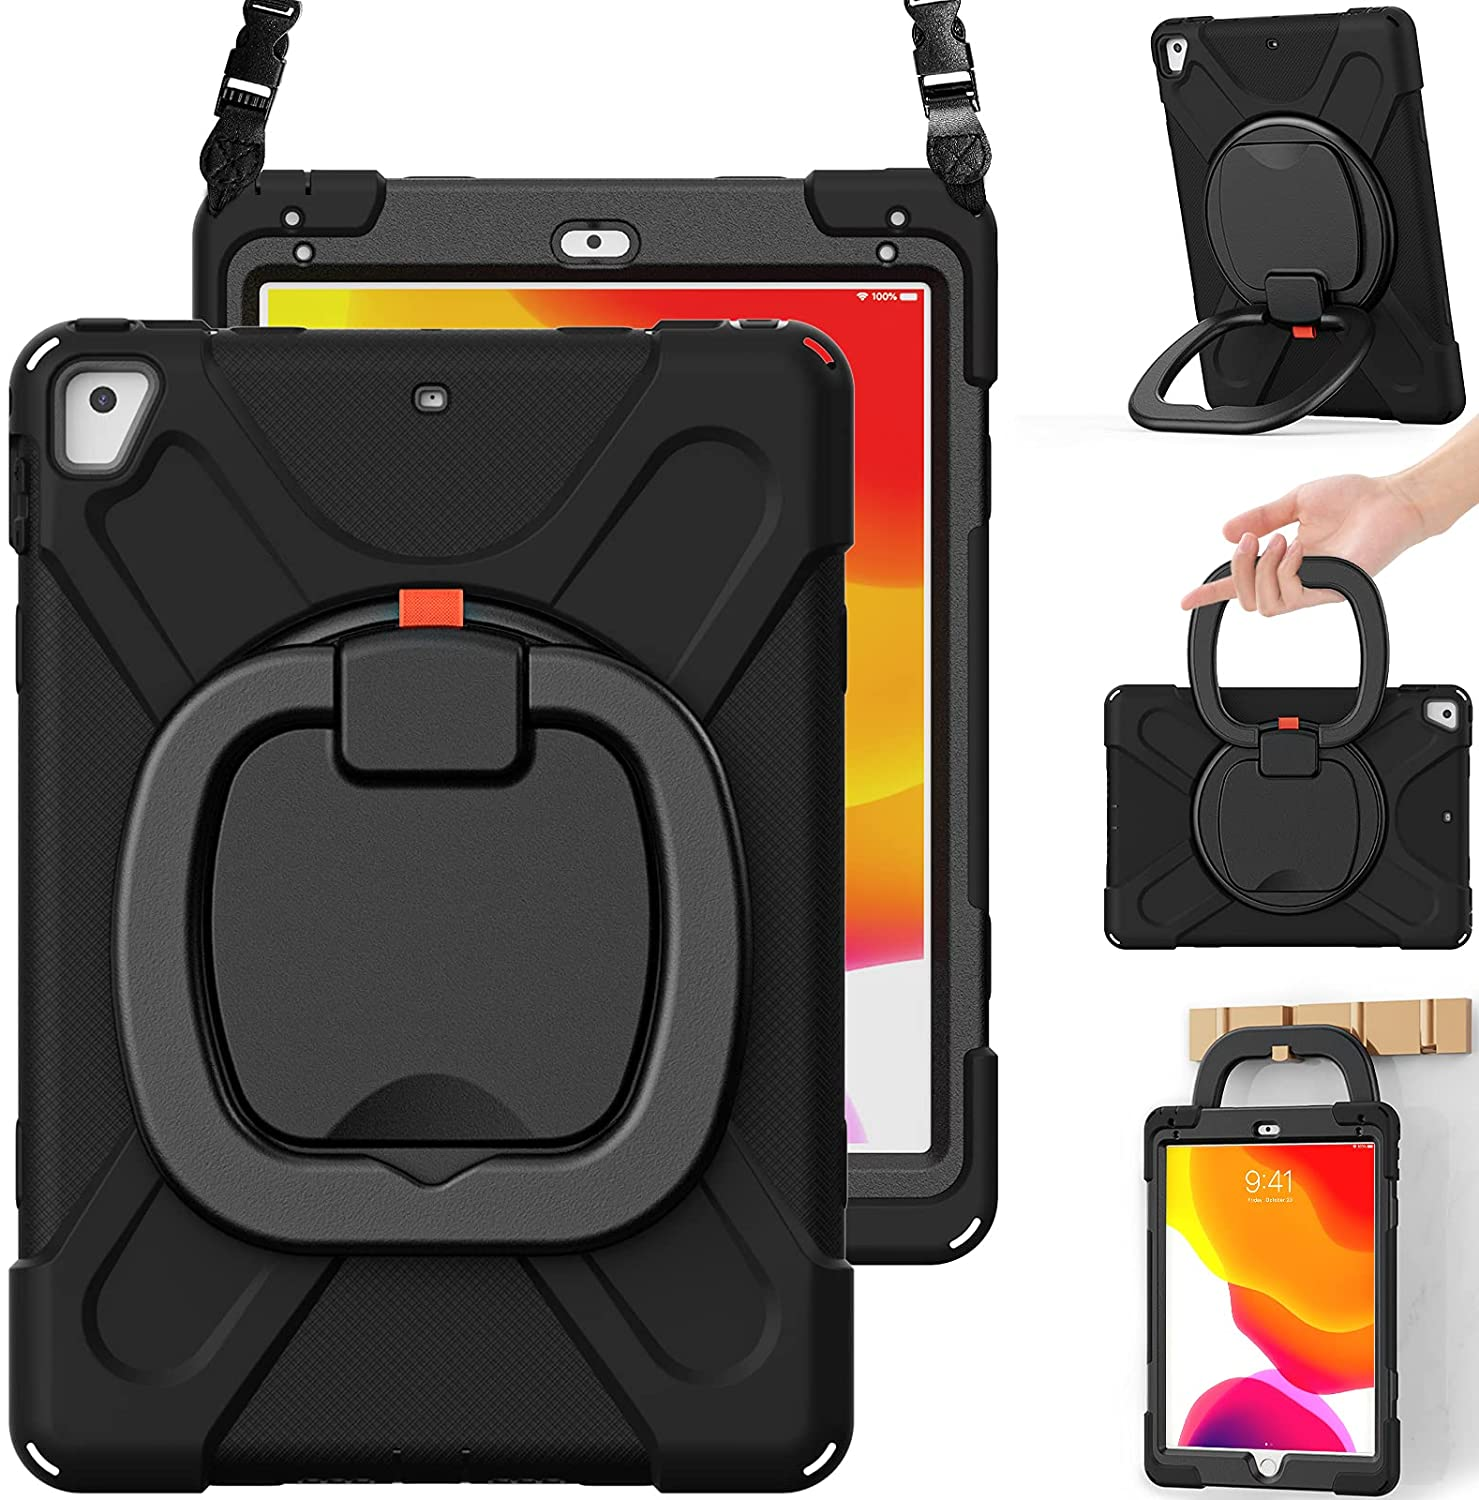 BRAECN iPad 6th/5th Generation Case, iPad 9.7 Pro case, iPad Air 2 Case for Kids, Shockproof Silicone Case with Rotatable Grip, Shoulder Strap, Pencil Holder, Stable Kickstand for iPad 9.7 Inch-Black